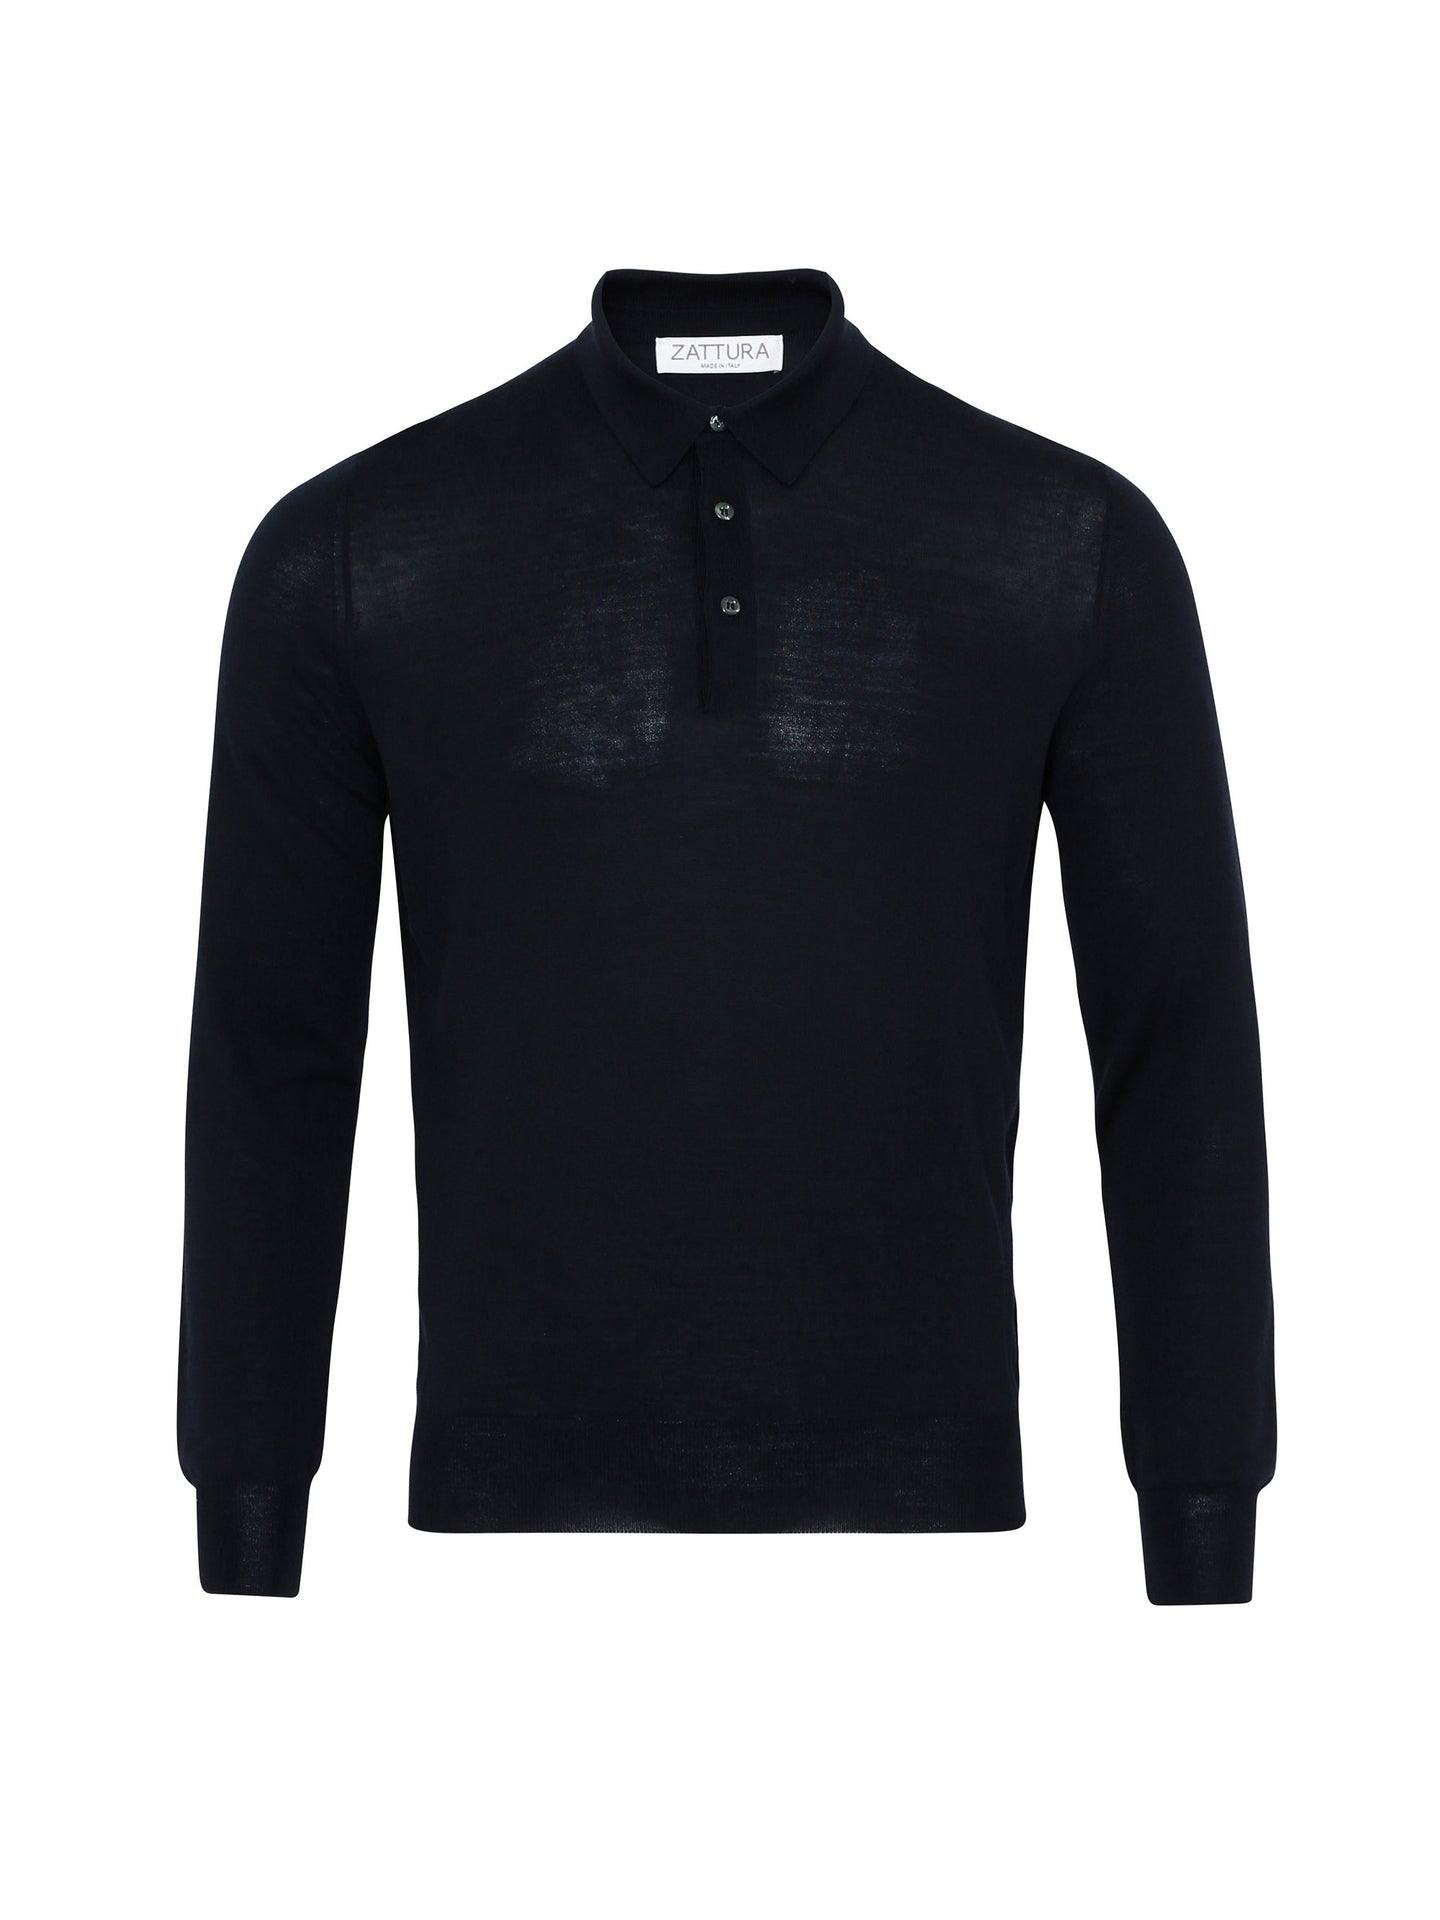 Zattura Superfine Merino Long Sleeve Polo (Navy) - Union 22